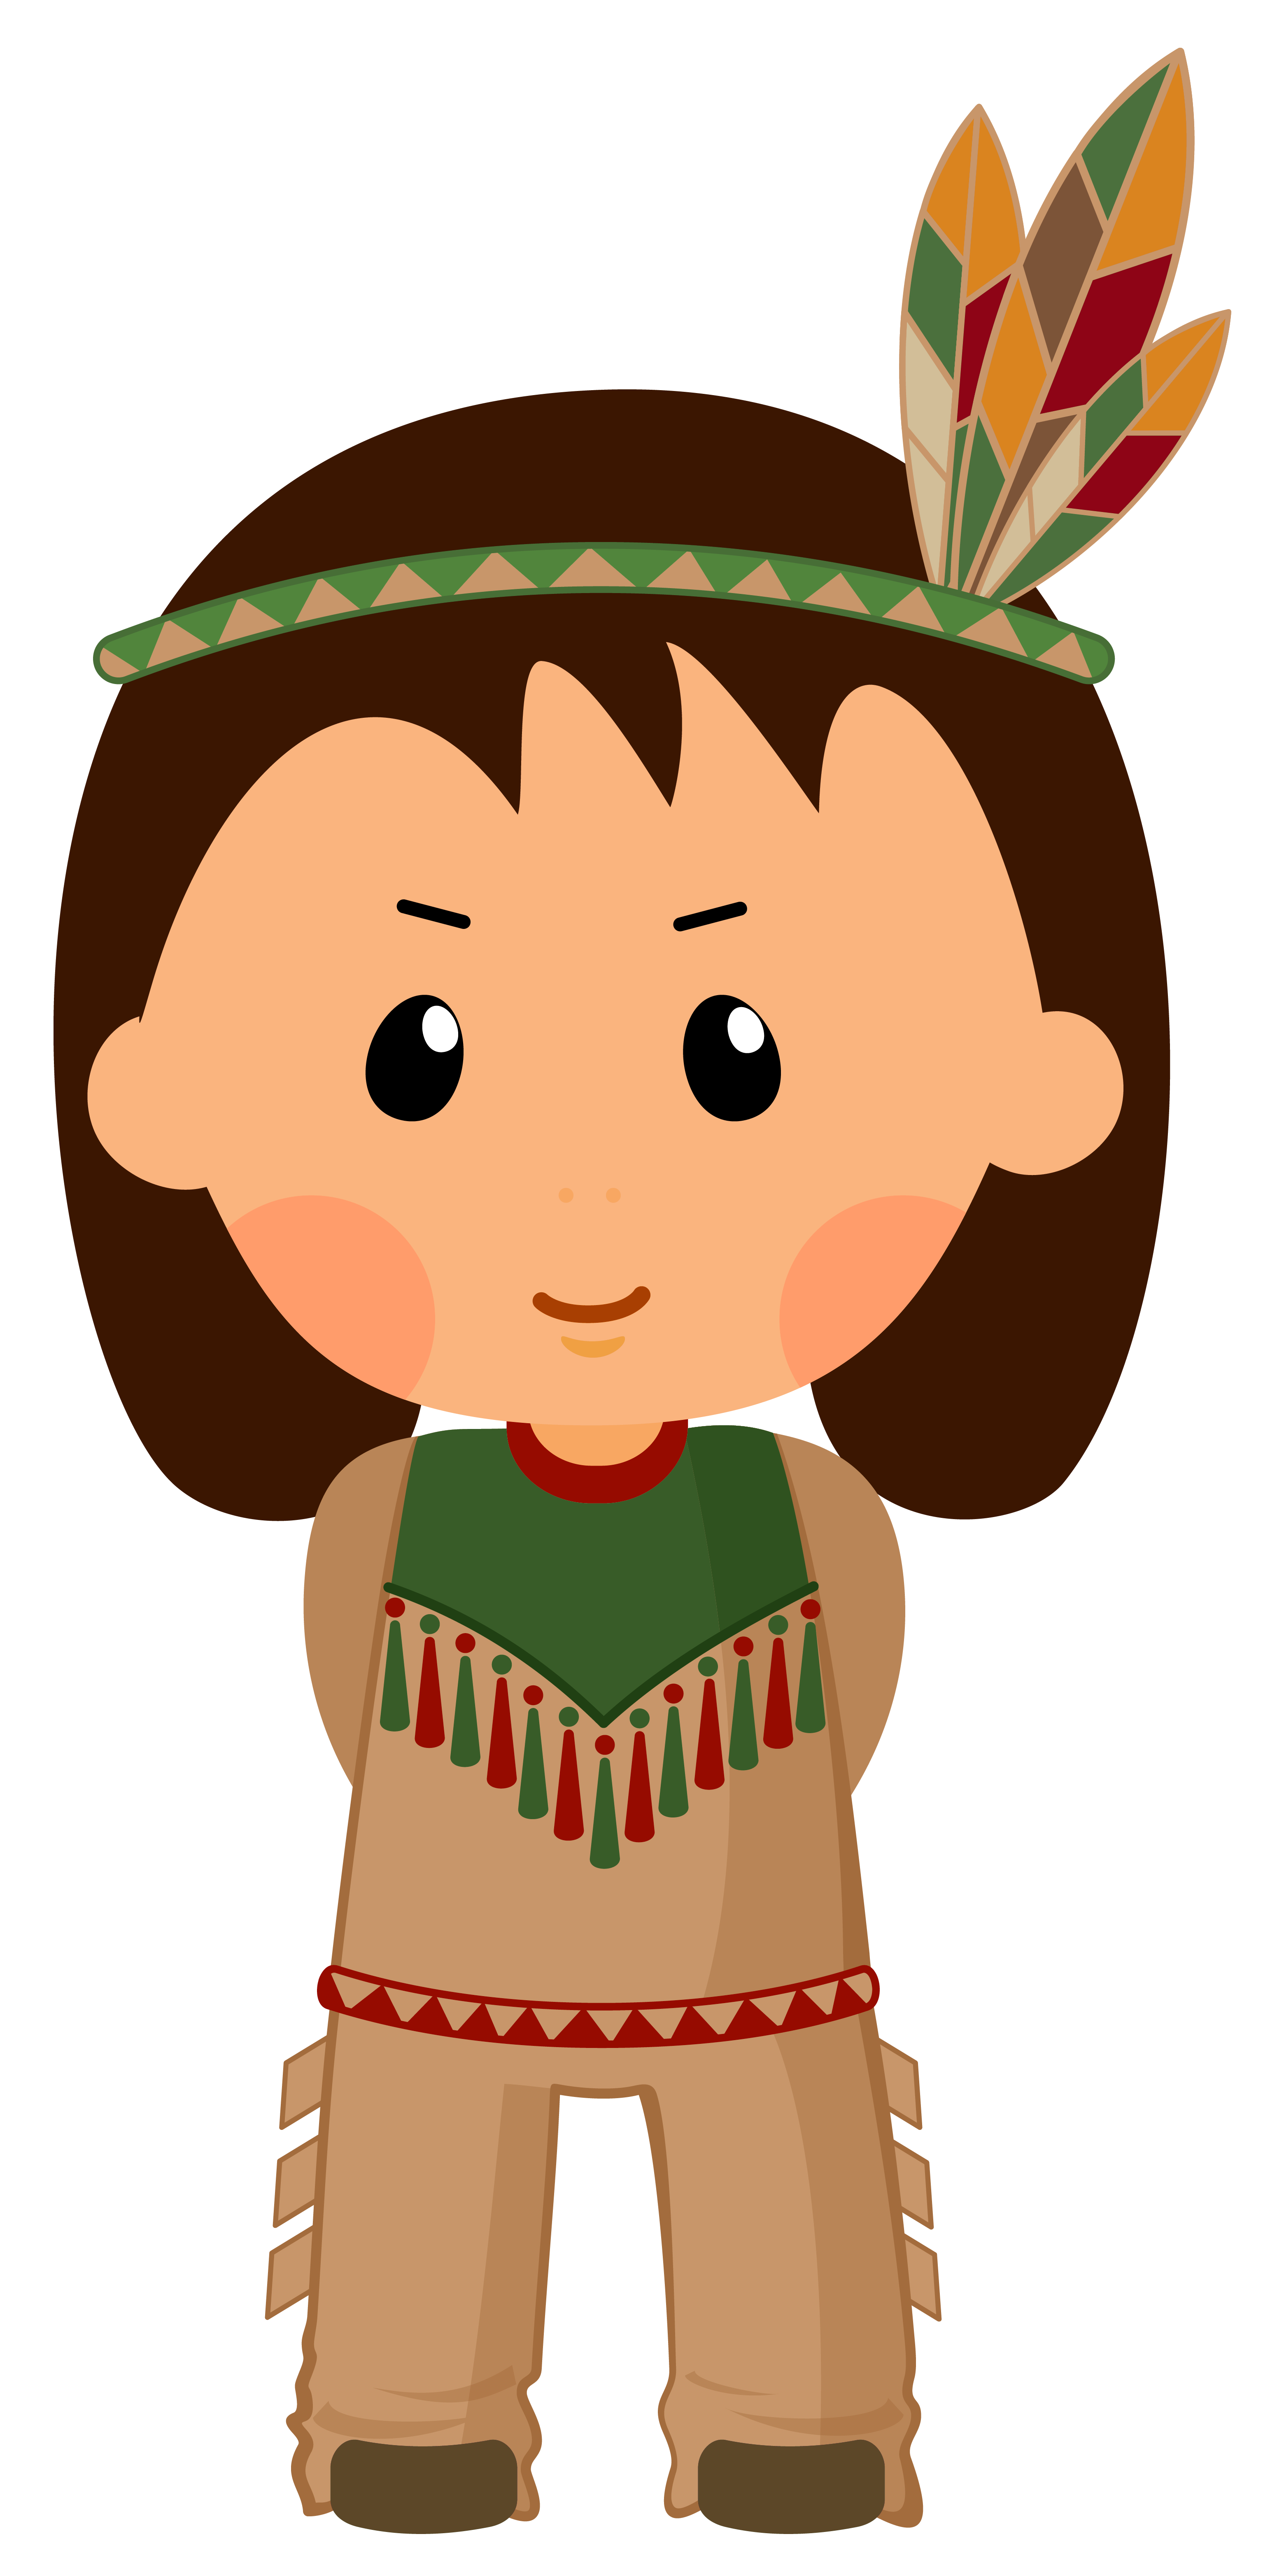 Native American clipart transparent Clipar Native PNG Yopriceville American